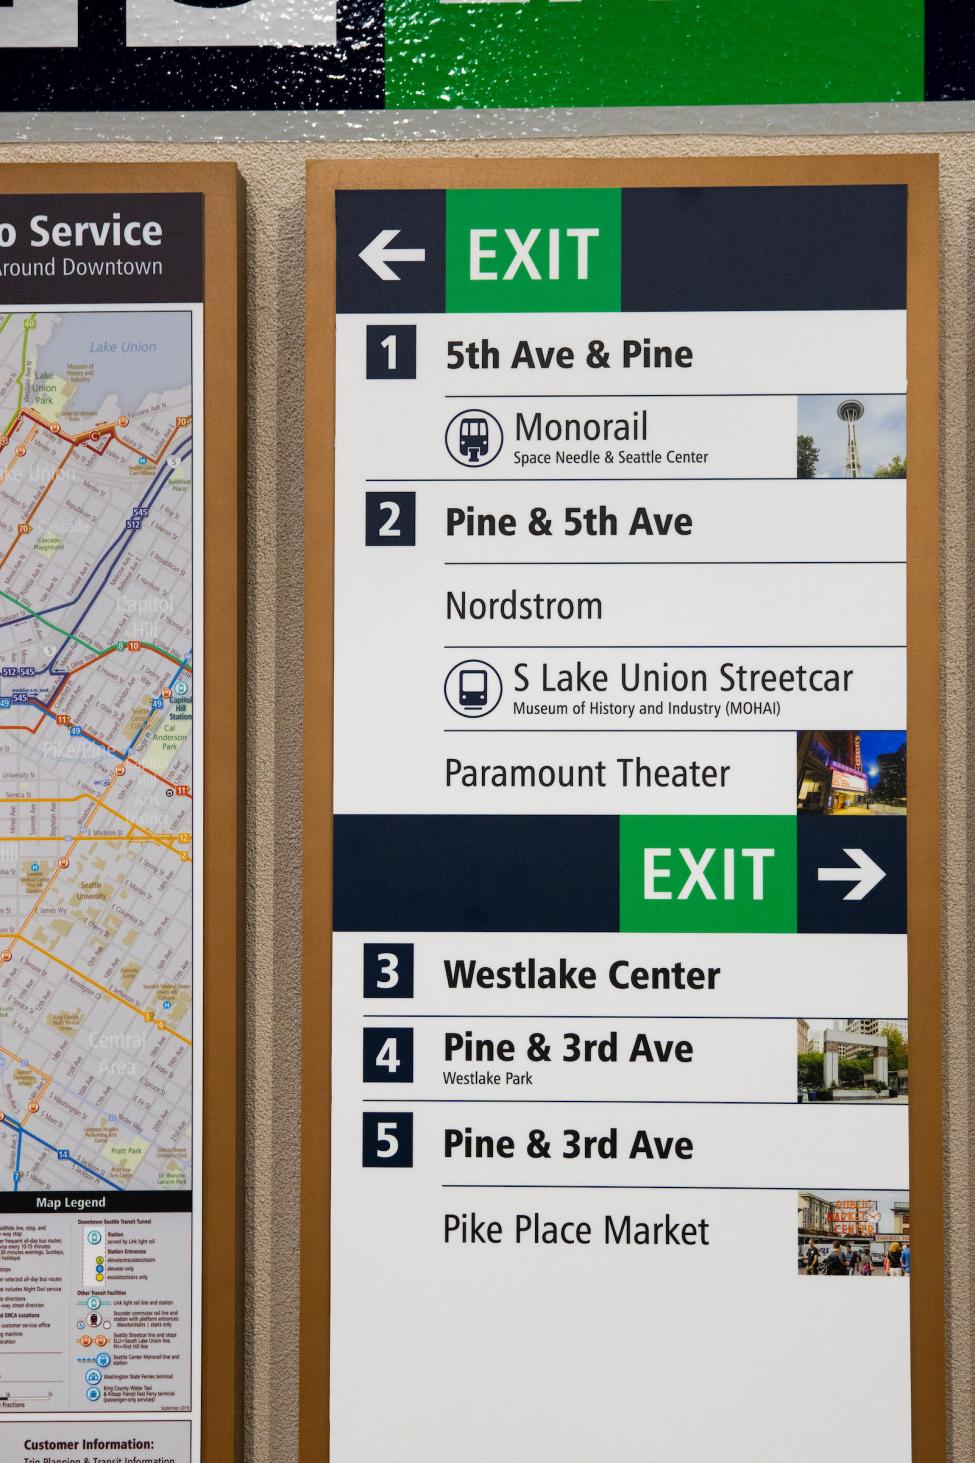 A photo of the new directory in Westlake Station shows how riders can get to the Monorail, Pike Place Market and more using the numbered exits.